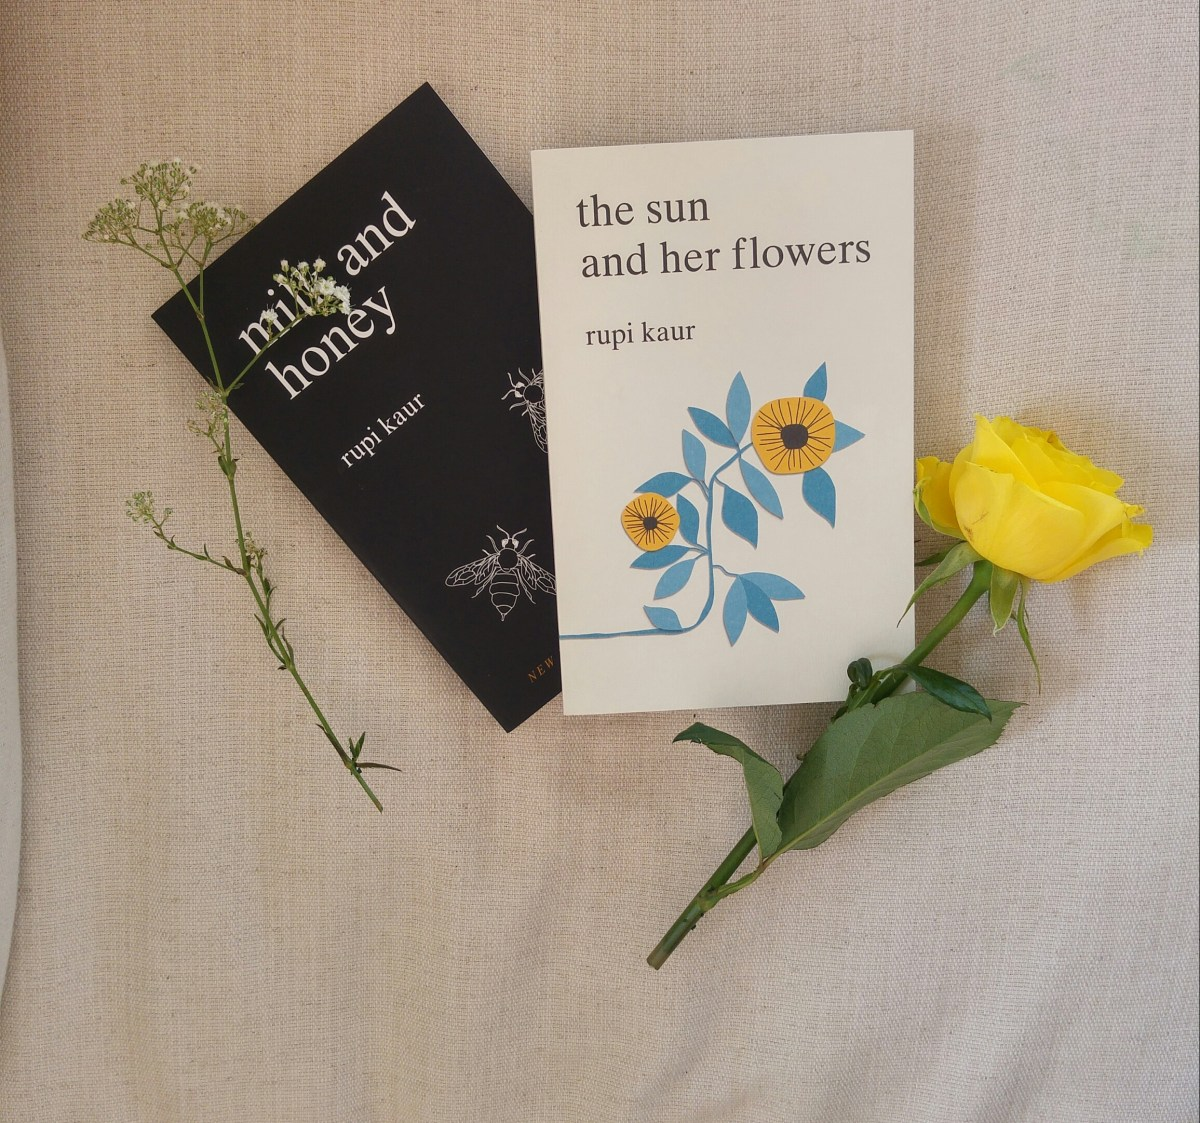 Book Review + Discussion: The Sun and Her Flowers and the Rupi Kaur Controversy